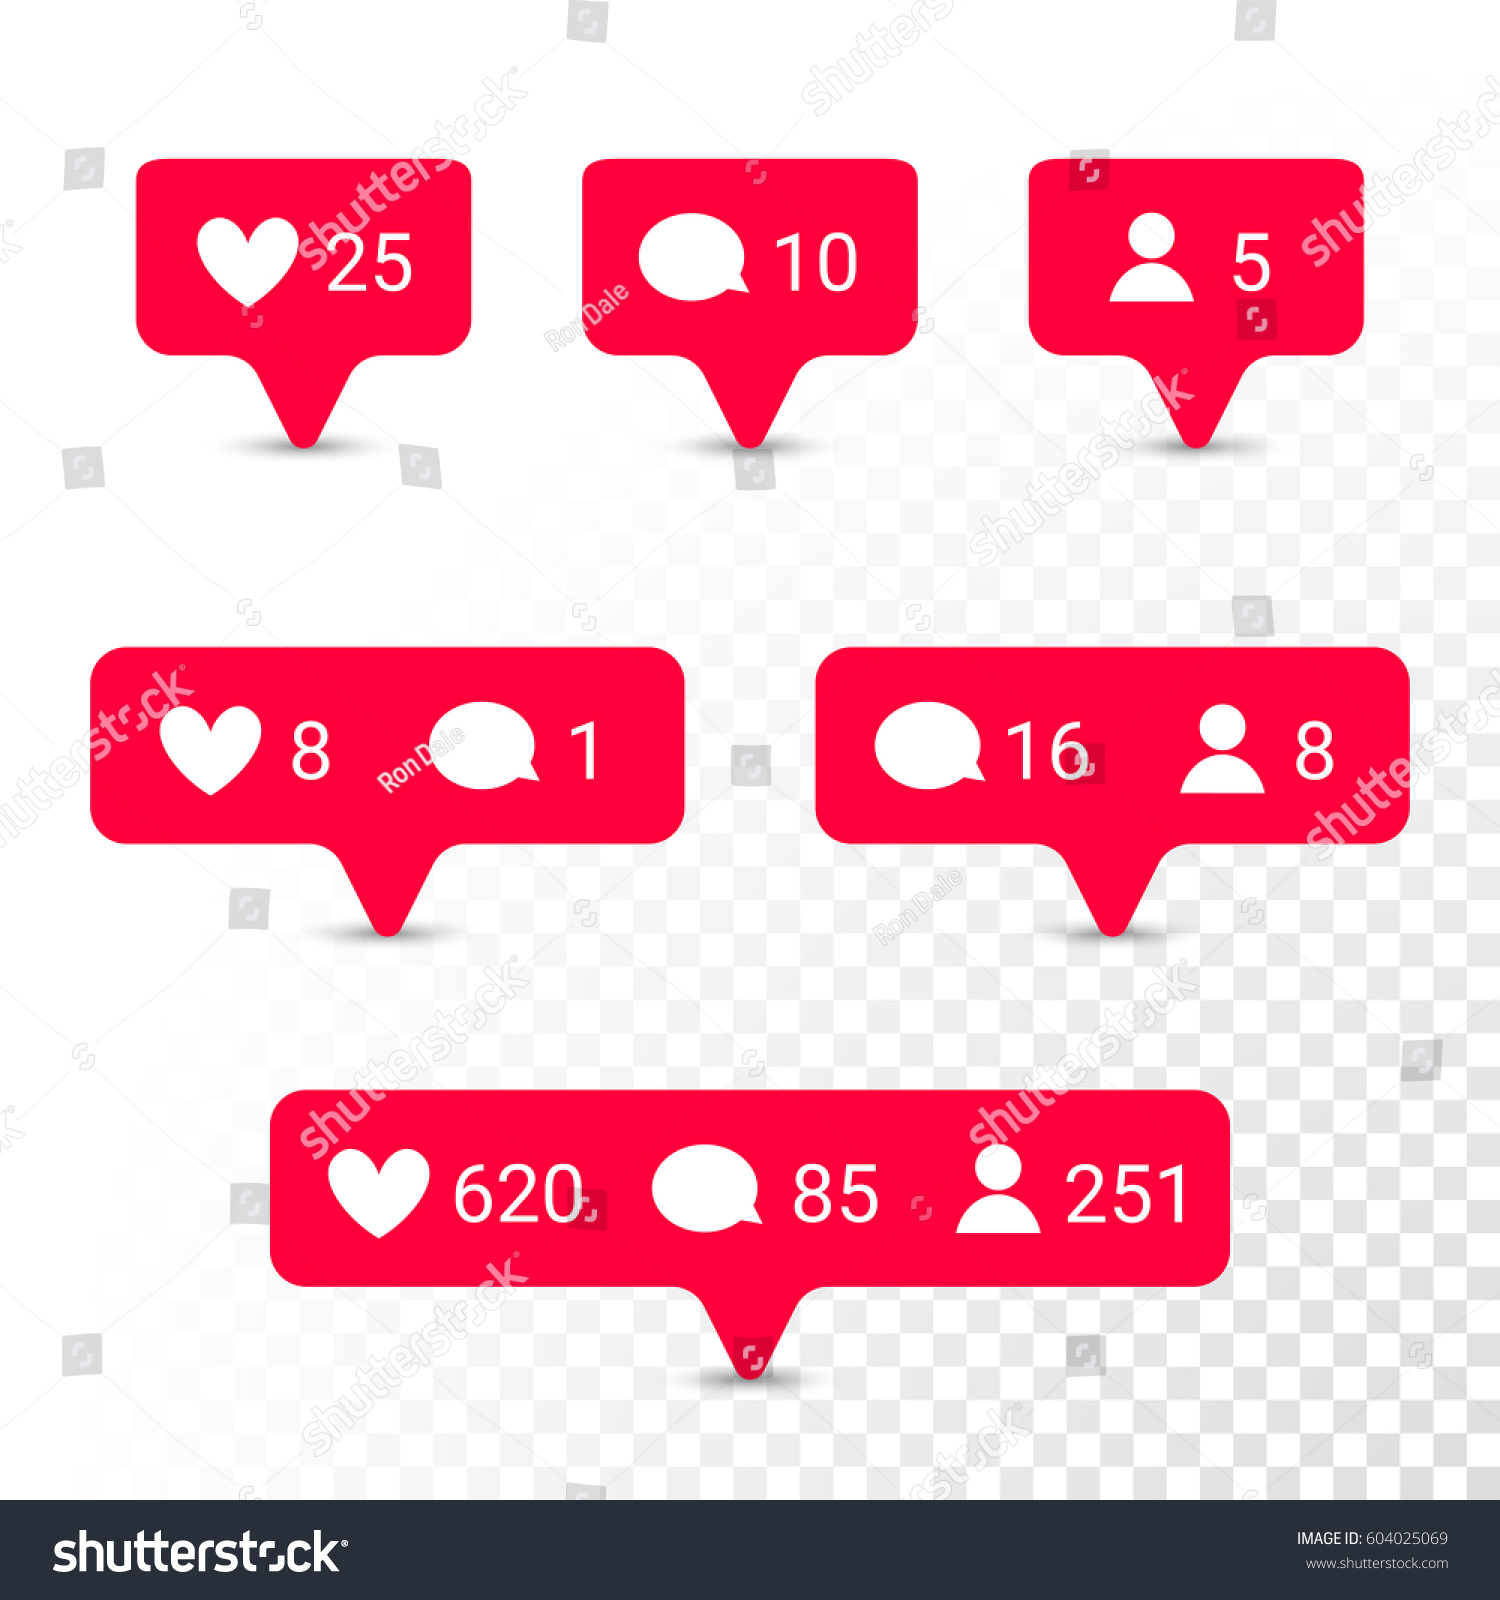 Red notifications vector icons templates social stock vector red notifications vector icons templates social network app symbols of heart like new message biocorpaavc Images